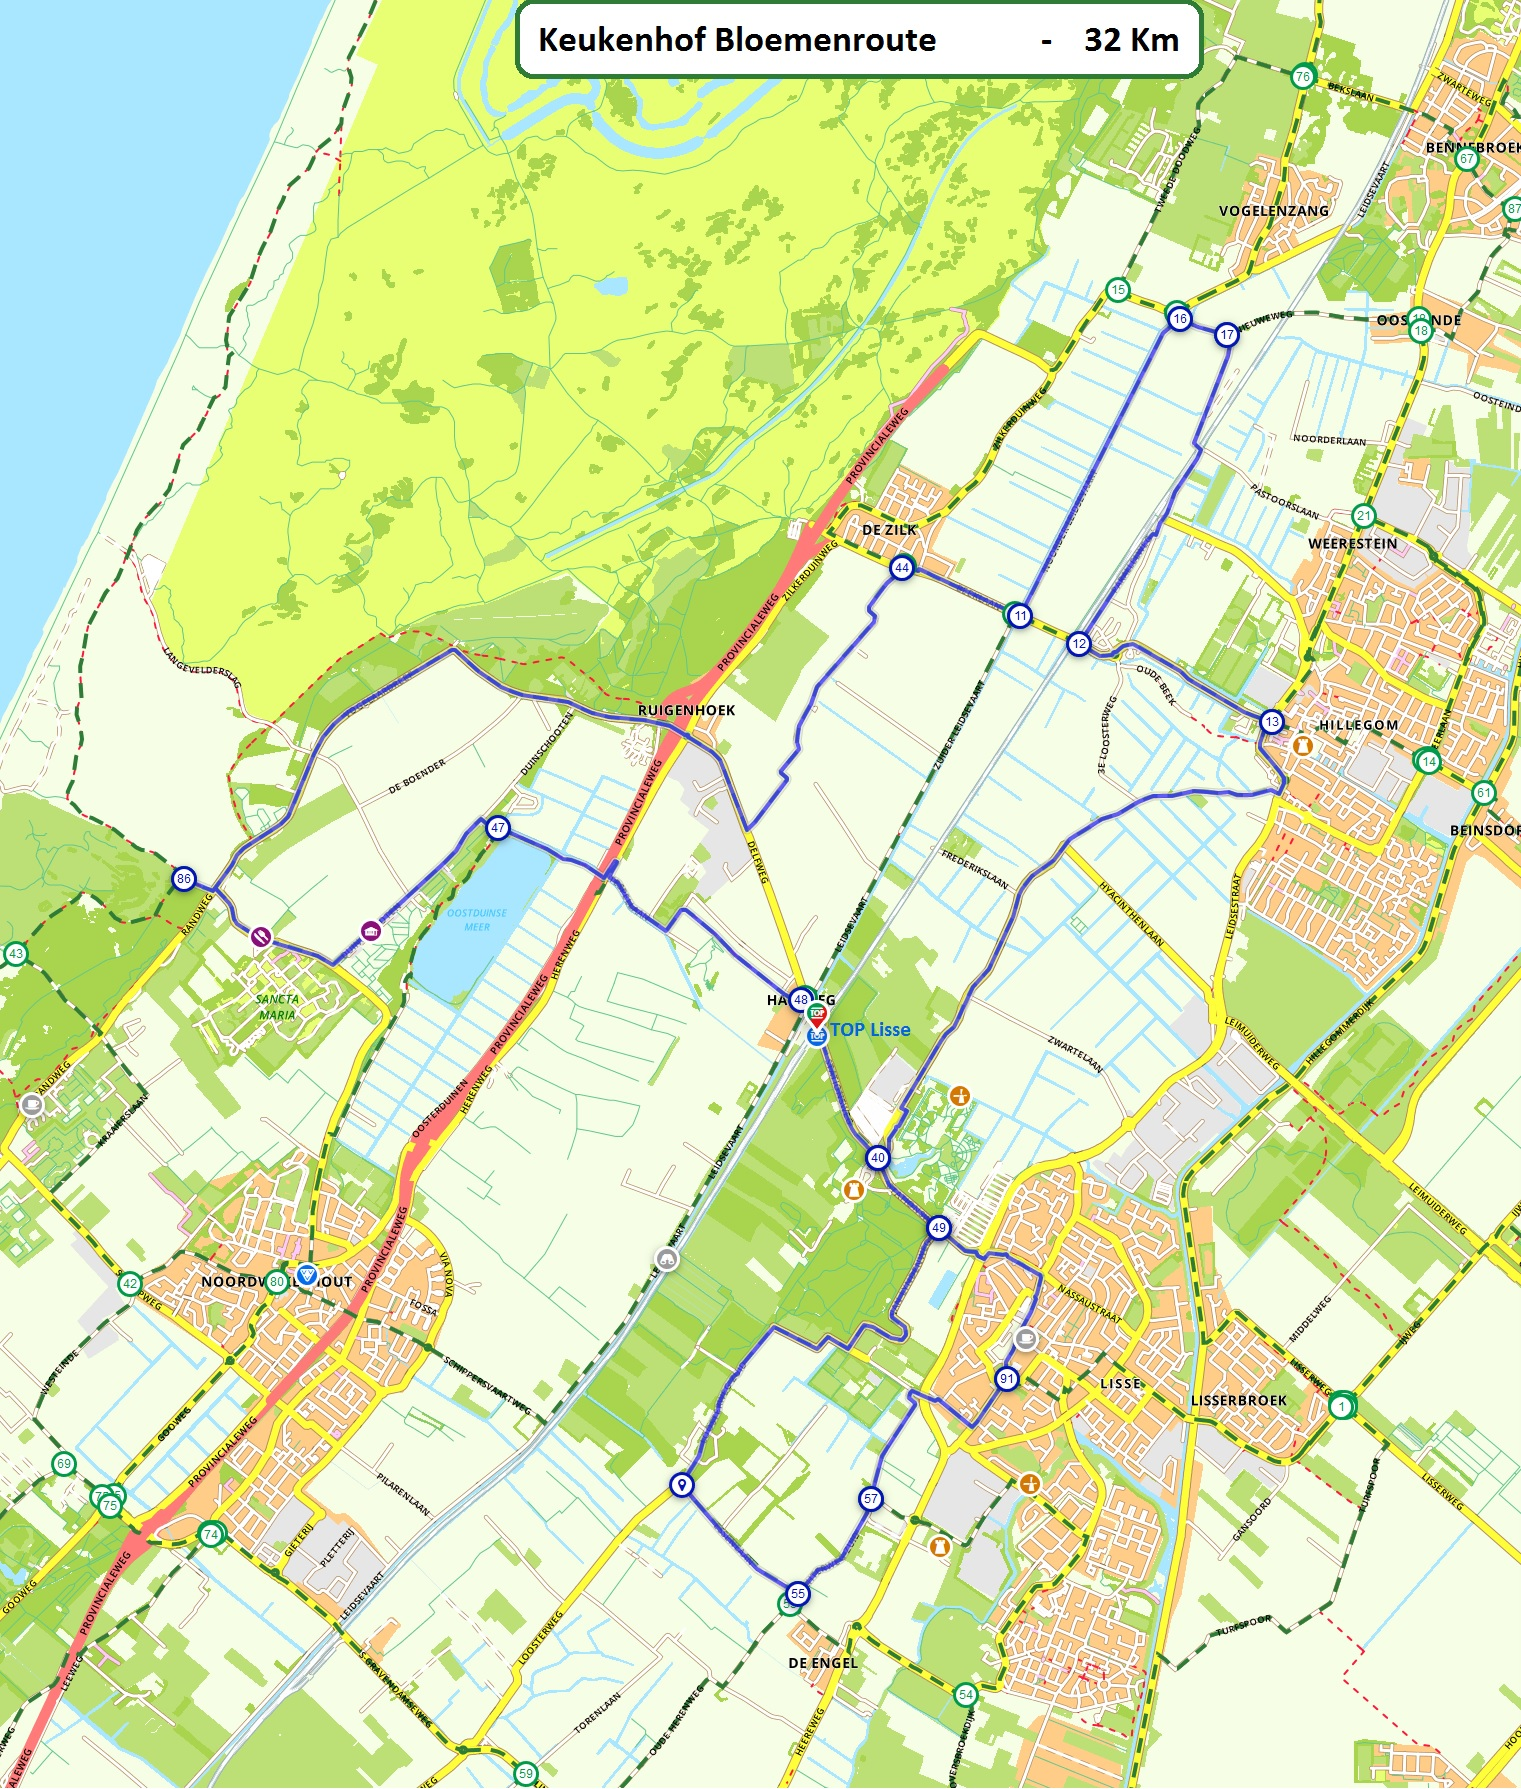 Routes, heerlijk fietsen of wandelen in een landelijke omgeving. on north holland map, het loo palace map, van gogh museum map, limburg map, rijksmuseum map, hoek van holland map, utrecht map, randstad map, amersfoort map, den haag map, lisse holland map,